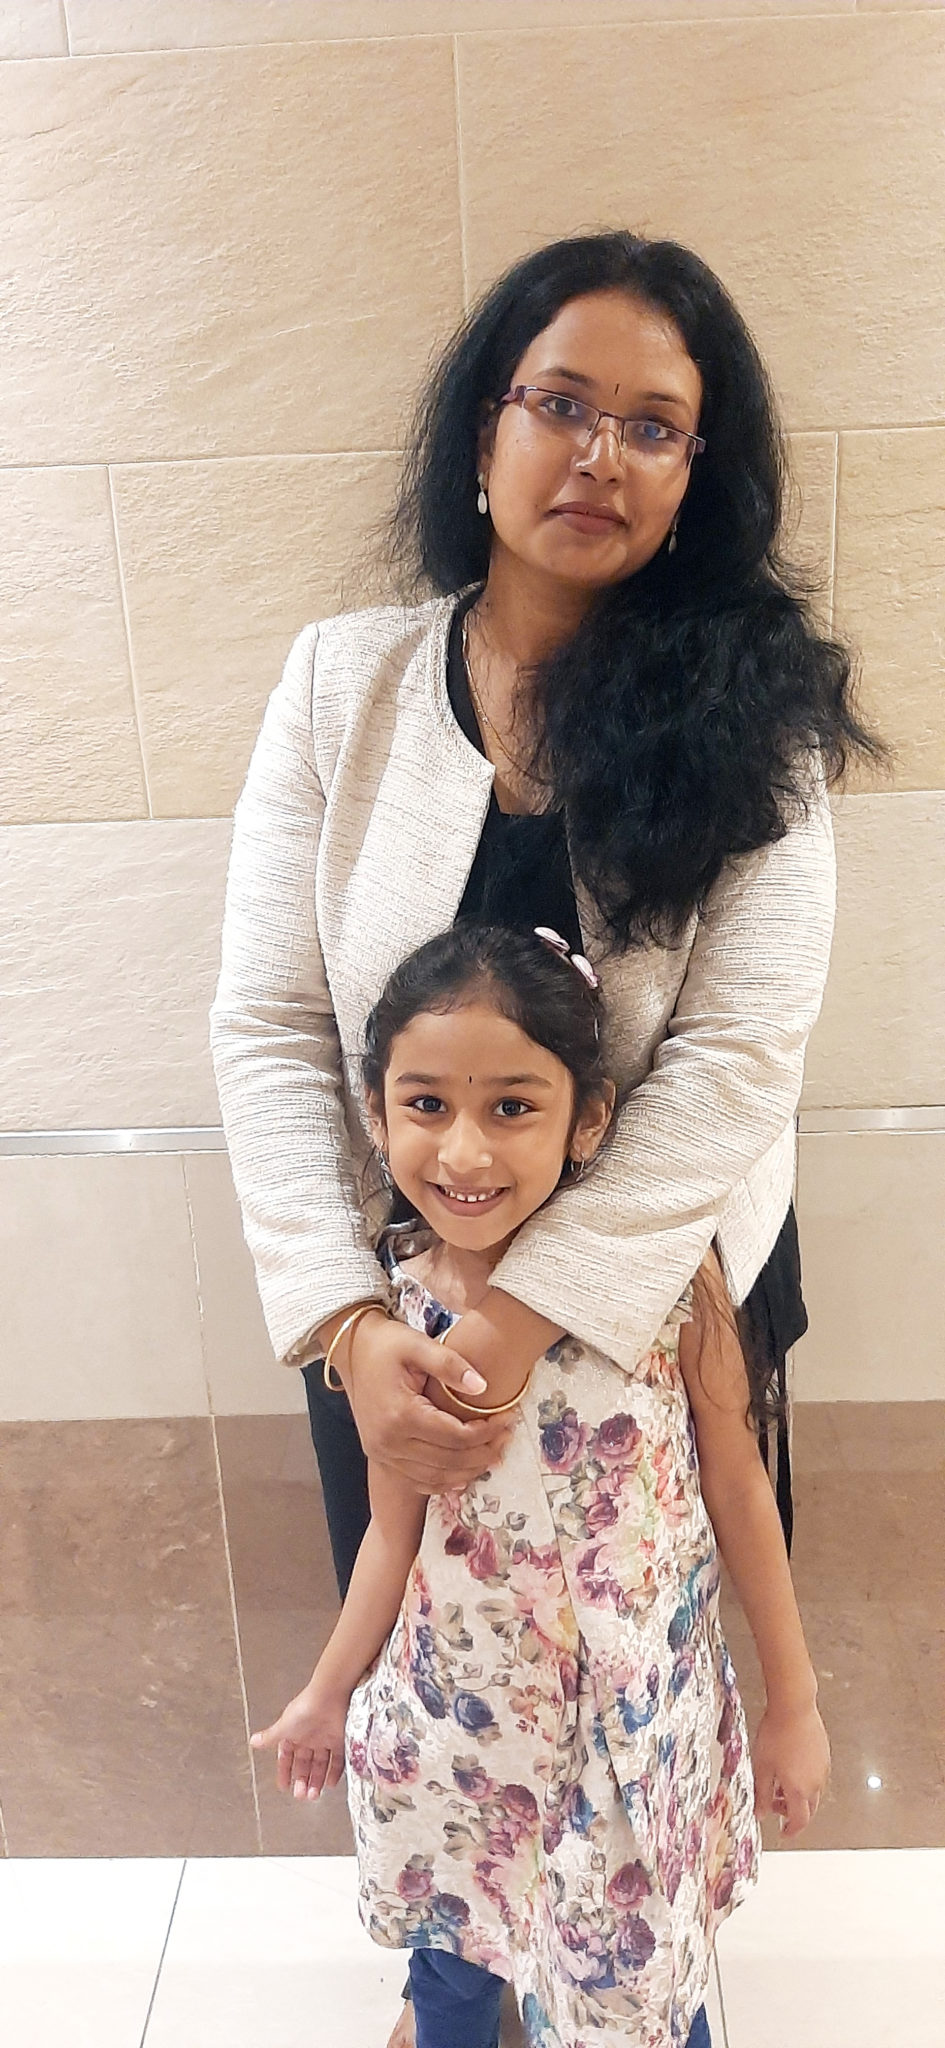 From Kitchen Formulating to Running Her Own Natural Skincare Business – Krithika's Success Story Student success stories